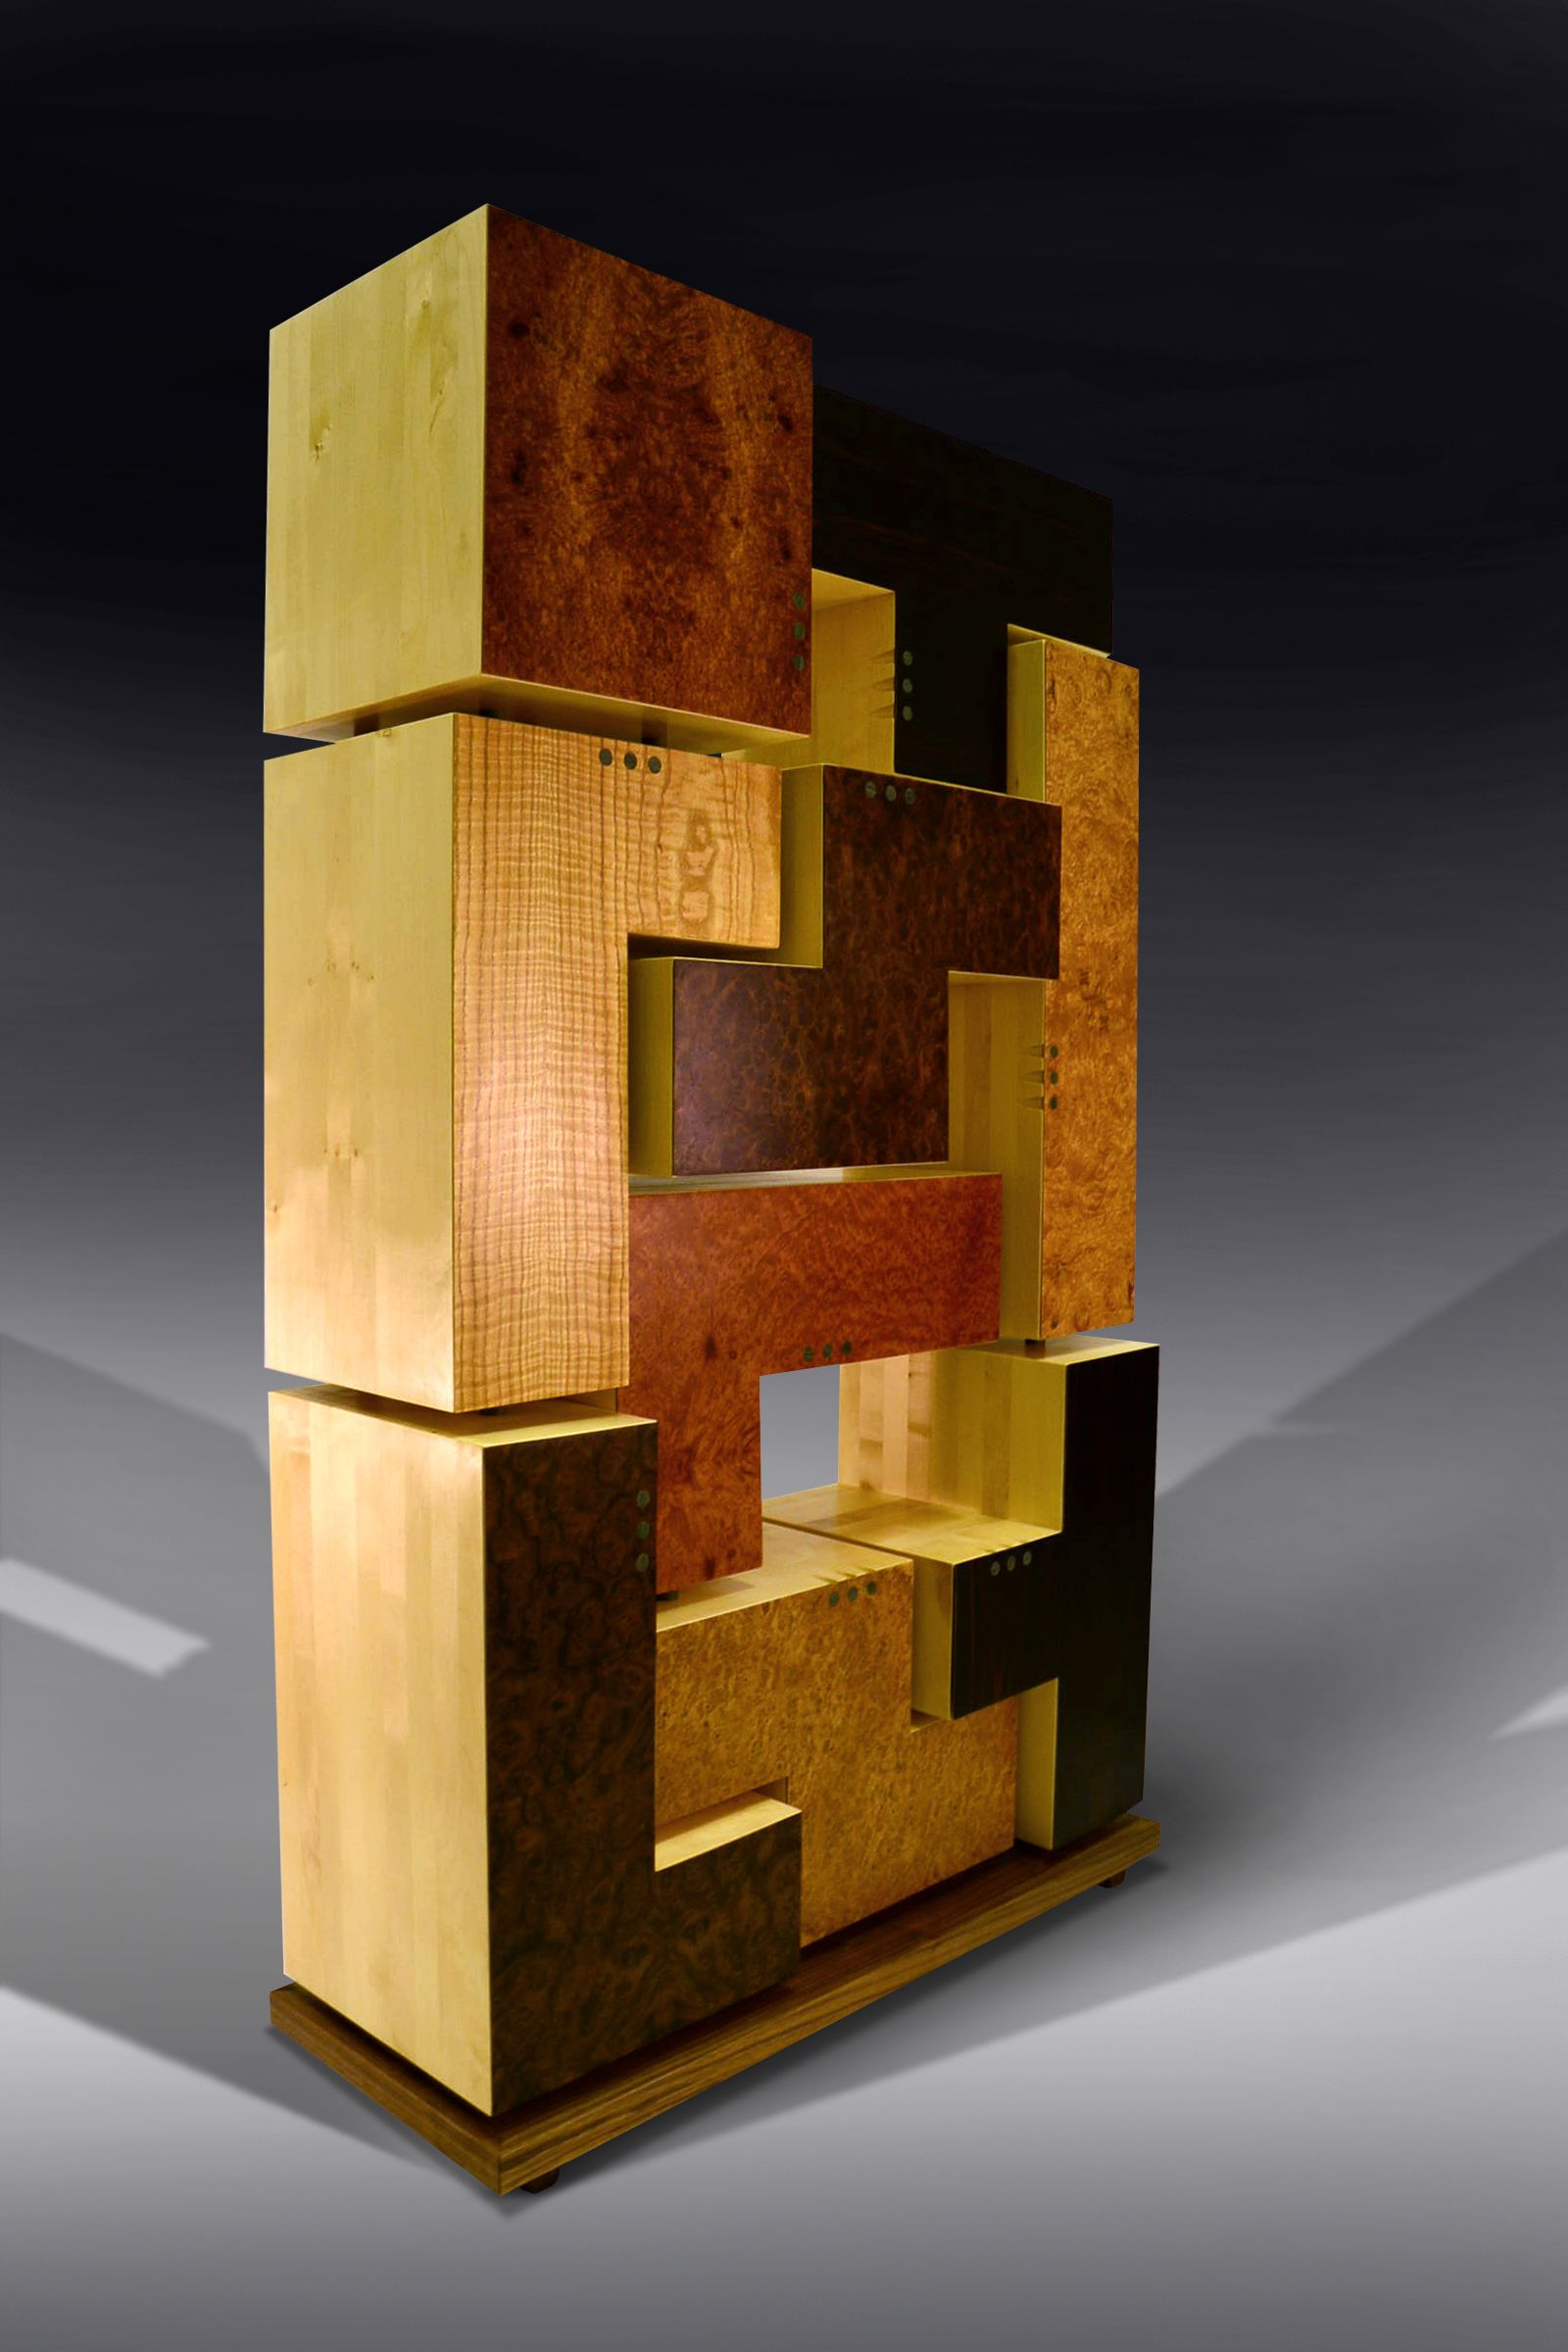 unusual furniture pieces. Tetris Cabinet - By Mos Bespoke Furniture. The Shapes In This Highly Unusual Storage Were Inspired Cult 80\u0027s Computer Game Tetris. Furniture Pieces